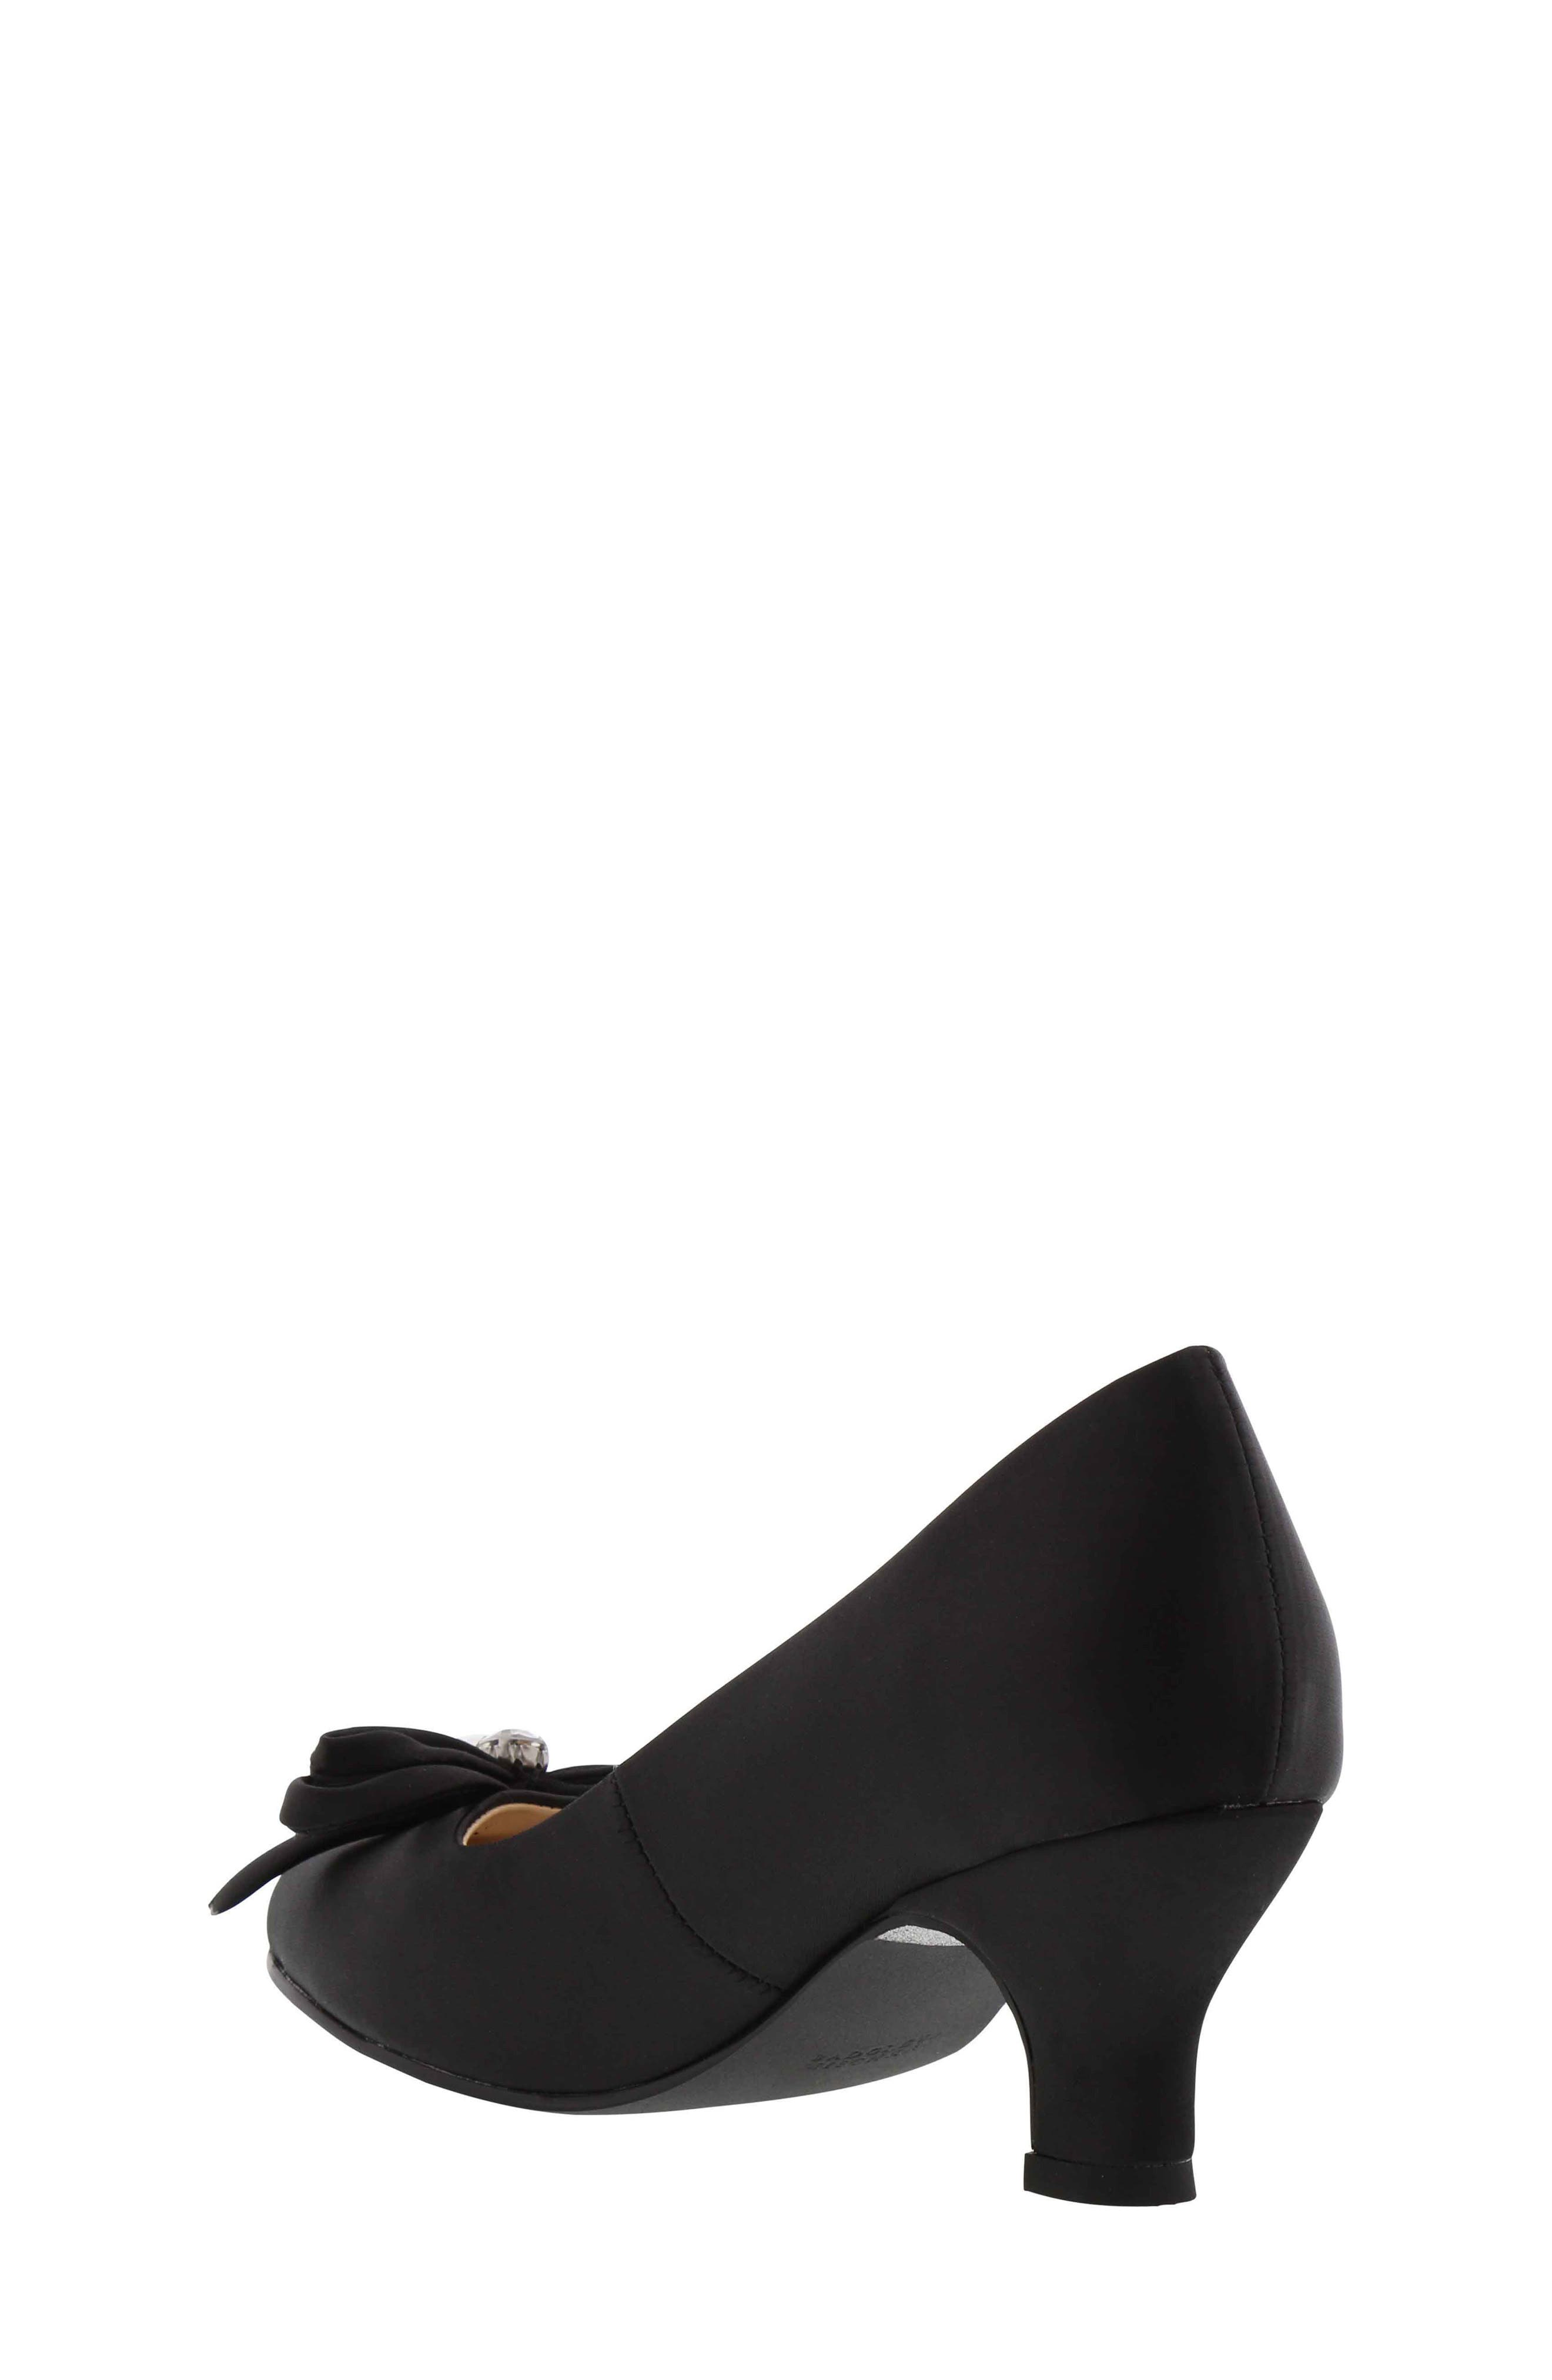 BADGLEY MISCHKA COLLECTION,                             Badgley Mischka Milah Embellished Bow Pump,                             Alternate thumbnail 2, color,                             BLACK